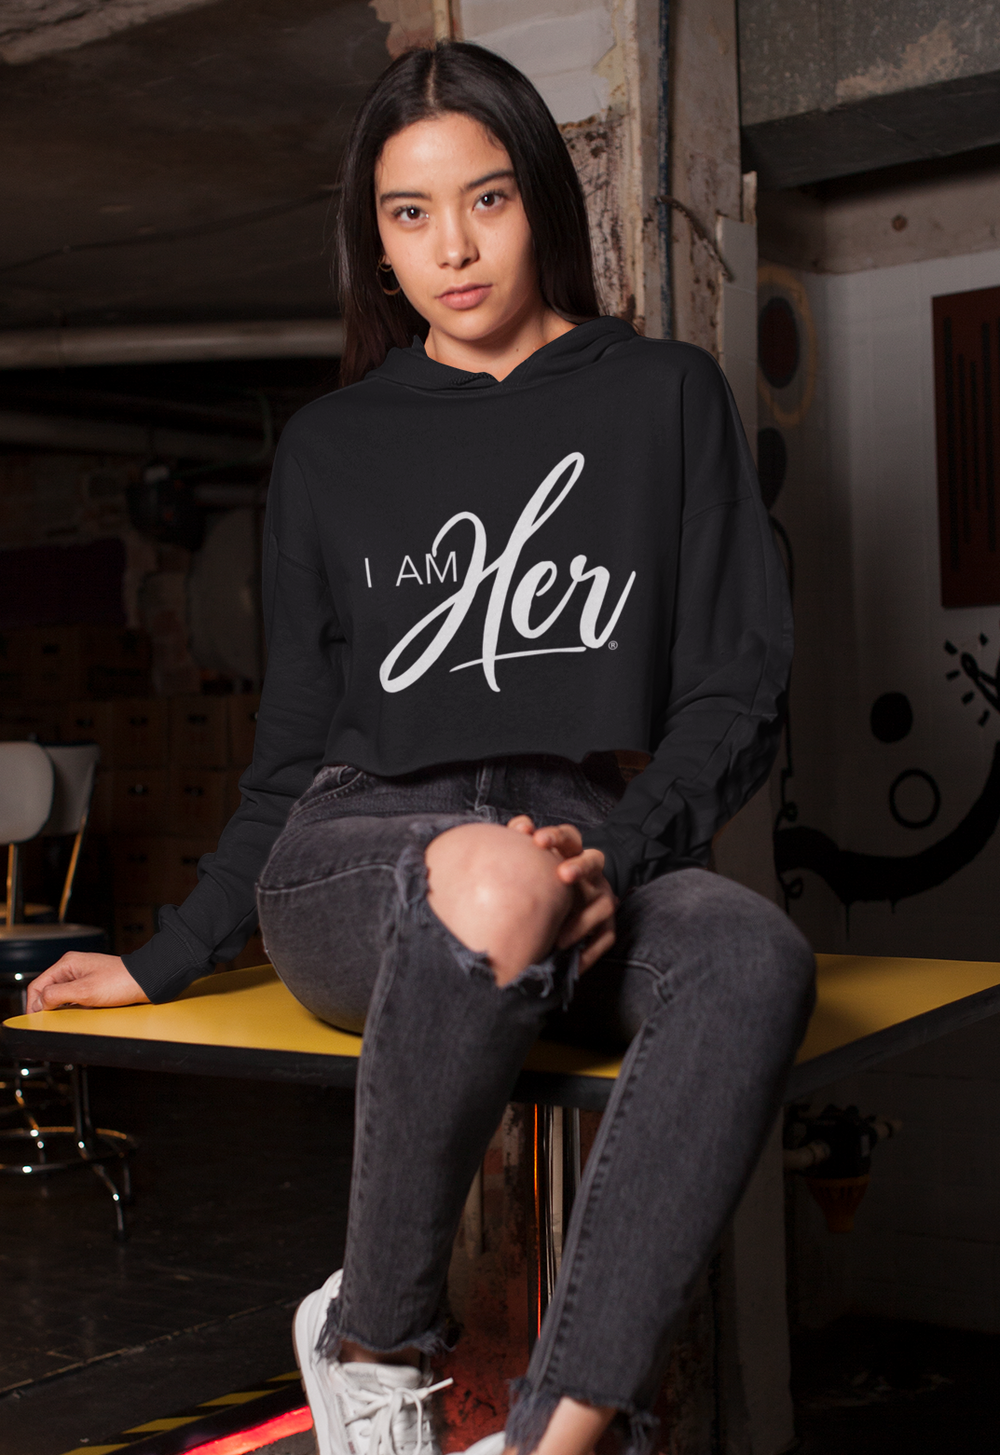 """I AM HER"" Signature Cropped Fleece Hoodie"